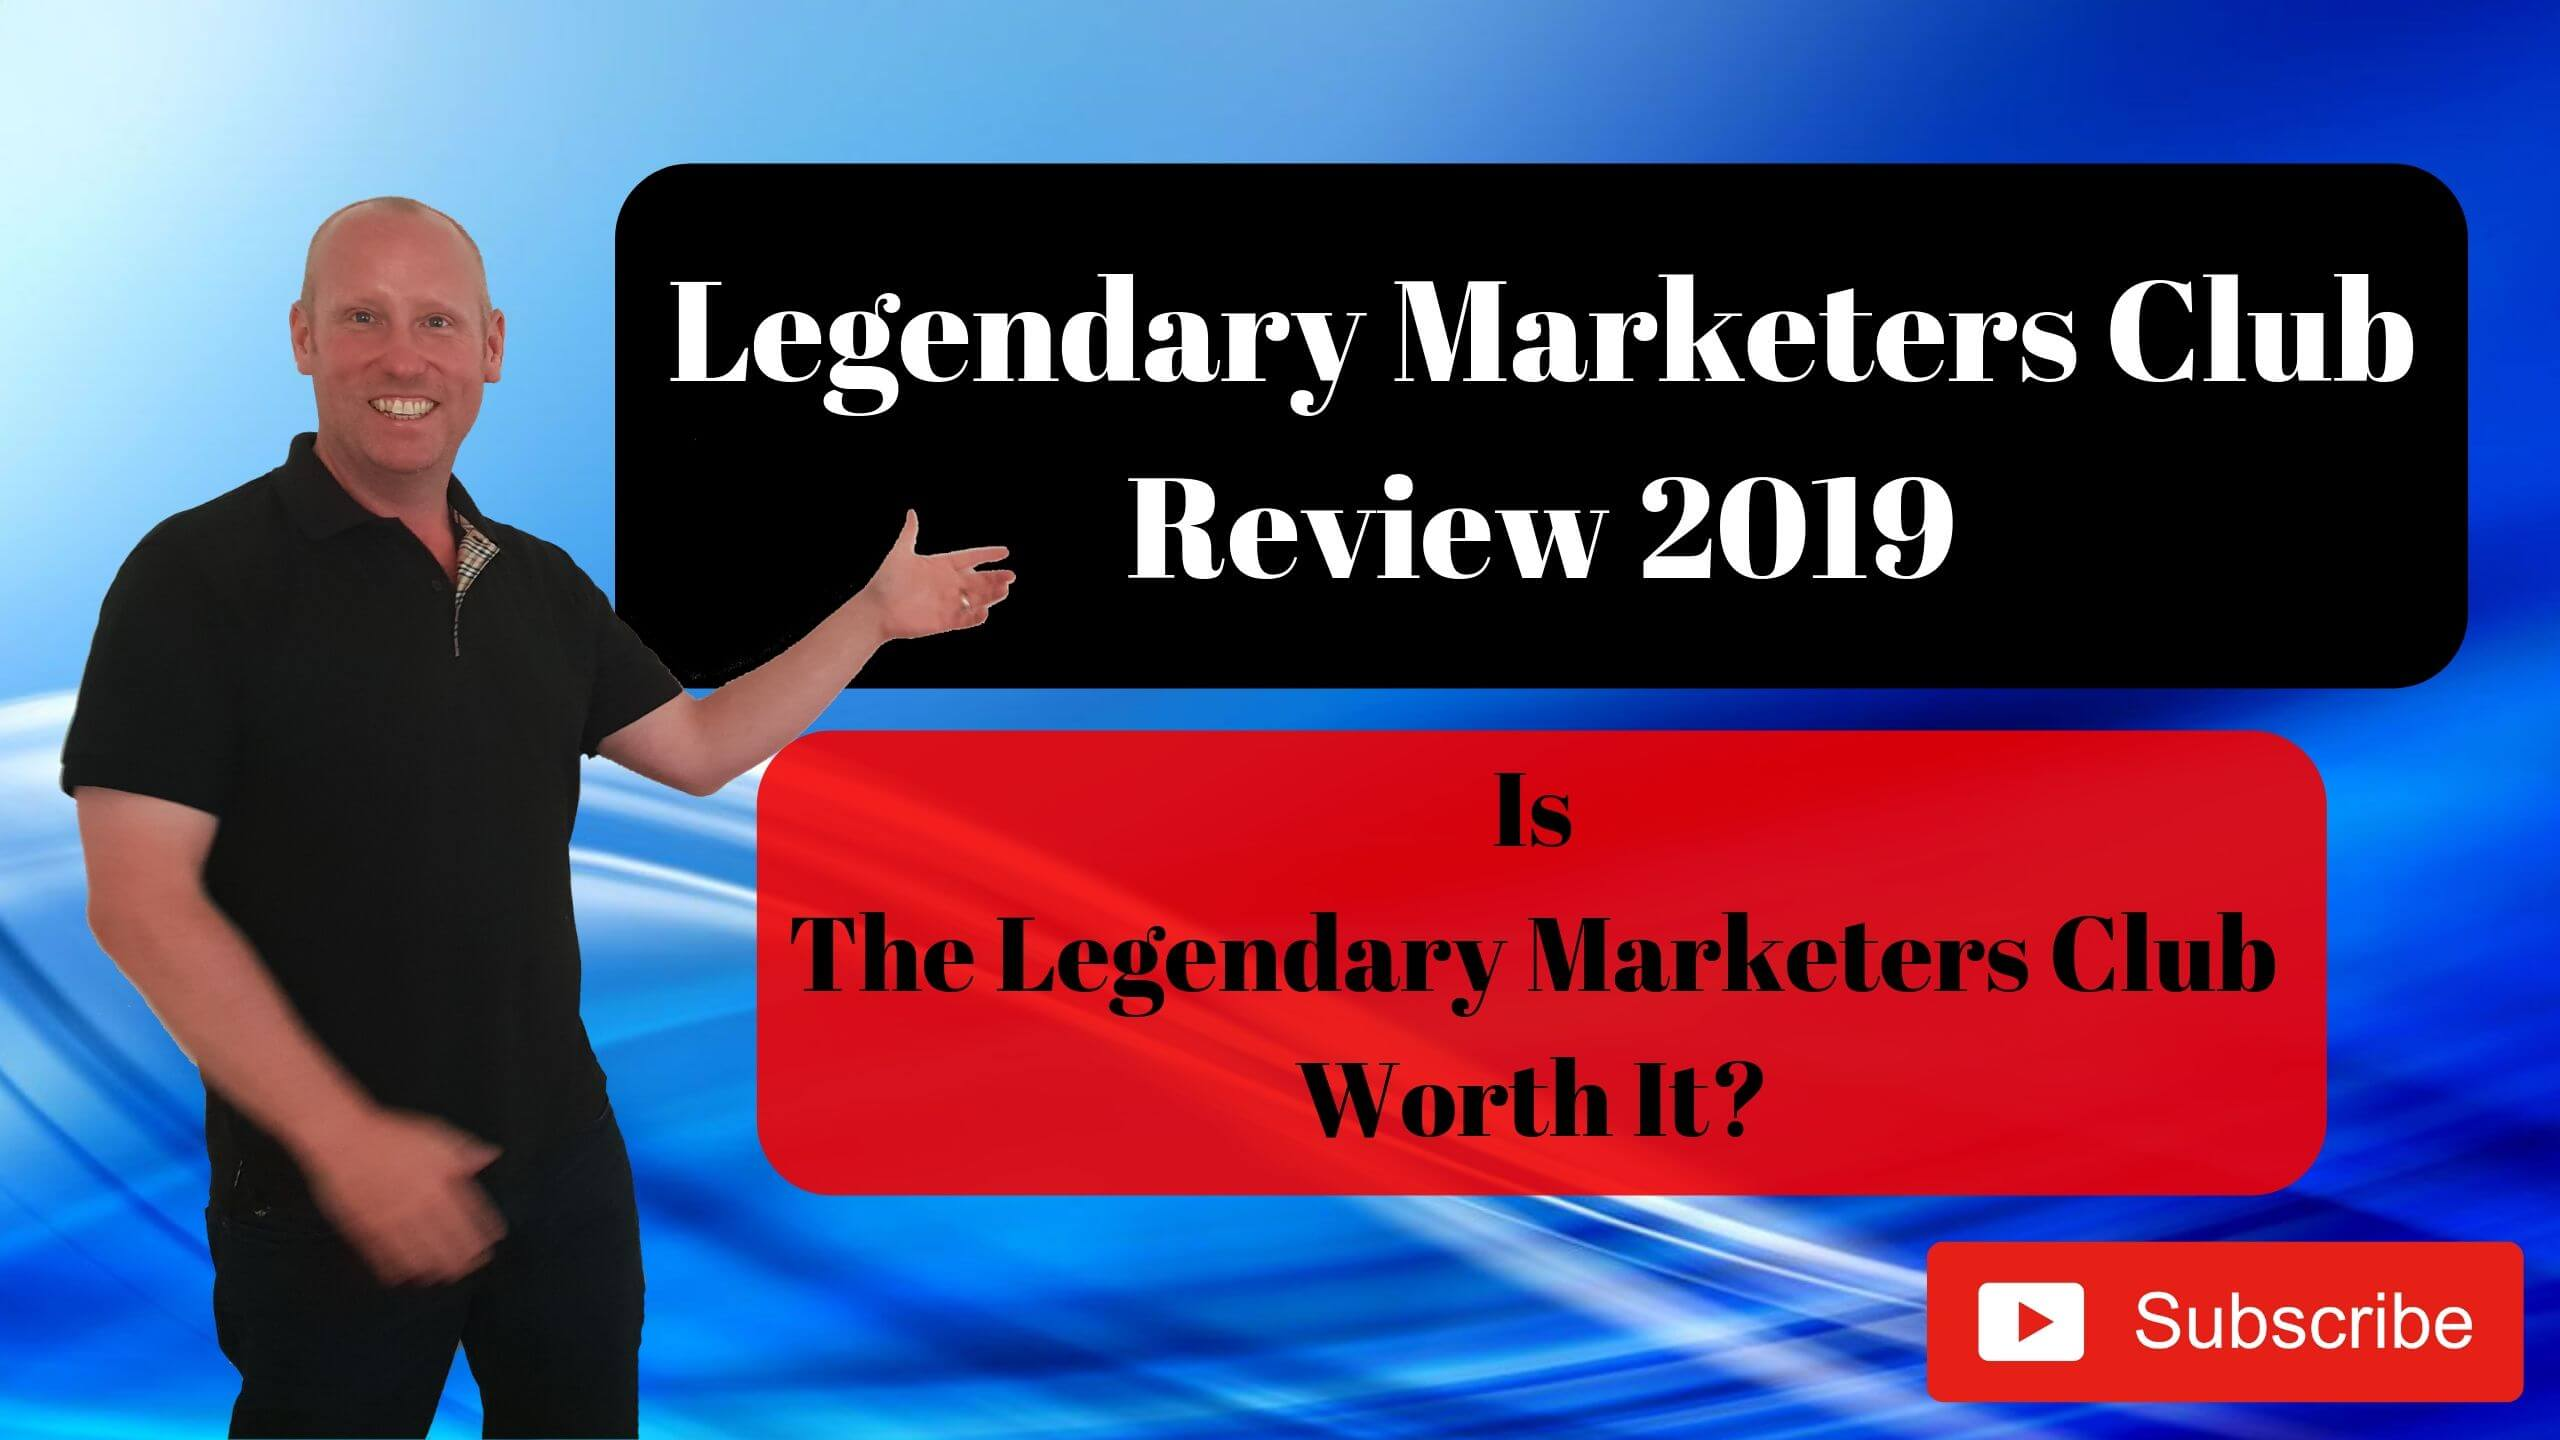 Legendary Marketer Internet Marketing Program  Settings